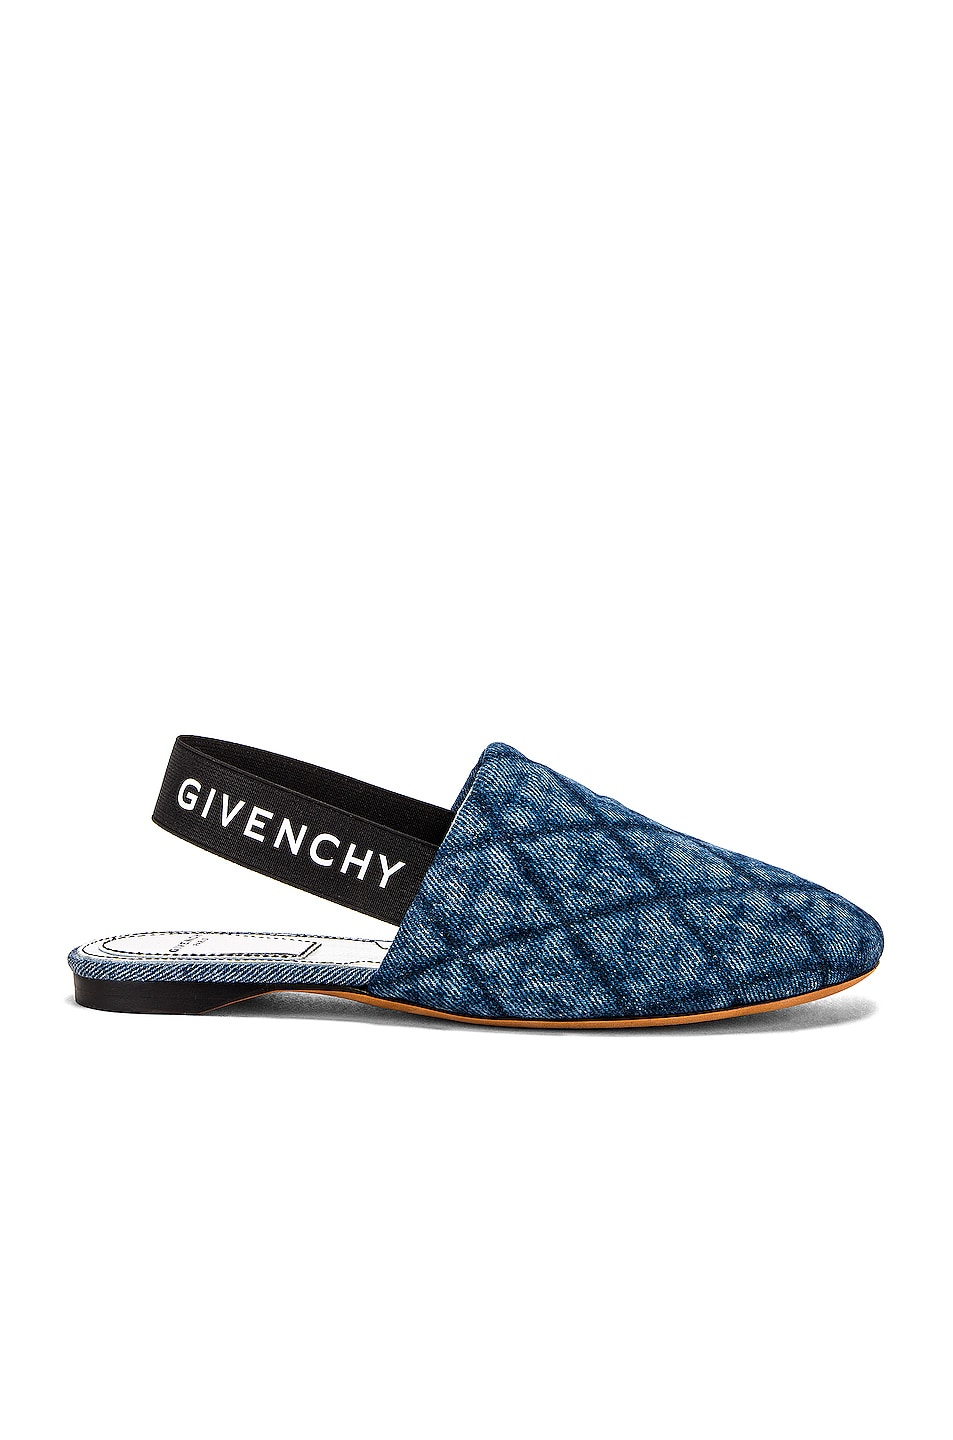 Image 1 of Givenchy Rivington Sling Back Flat in Blue Denim